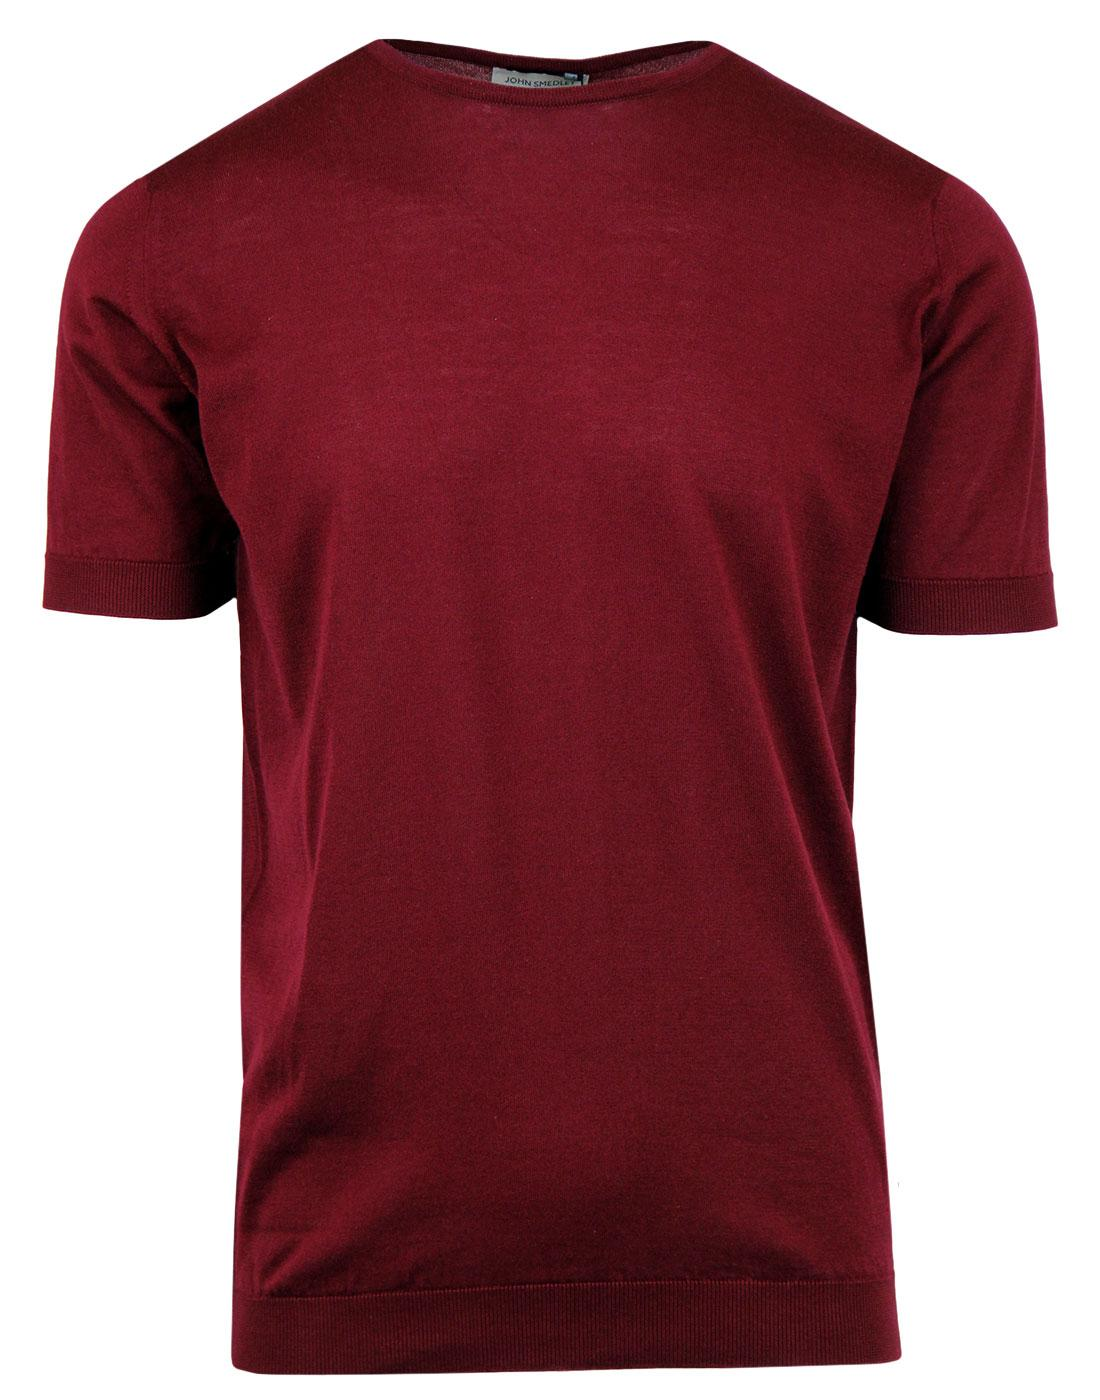 Belden JOHN SMEDLEY Made In England Tee BURGUNDY